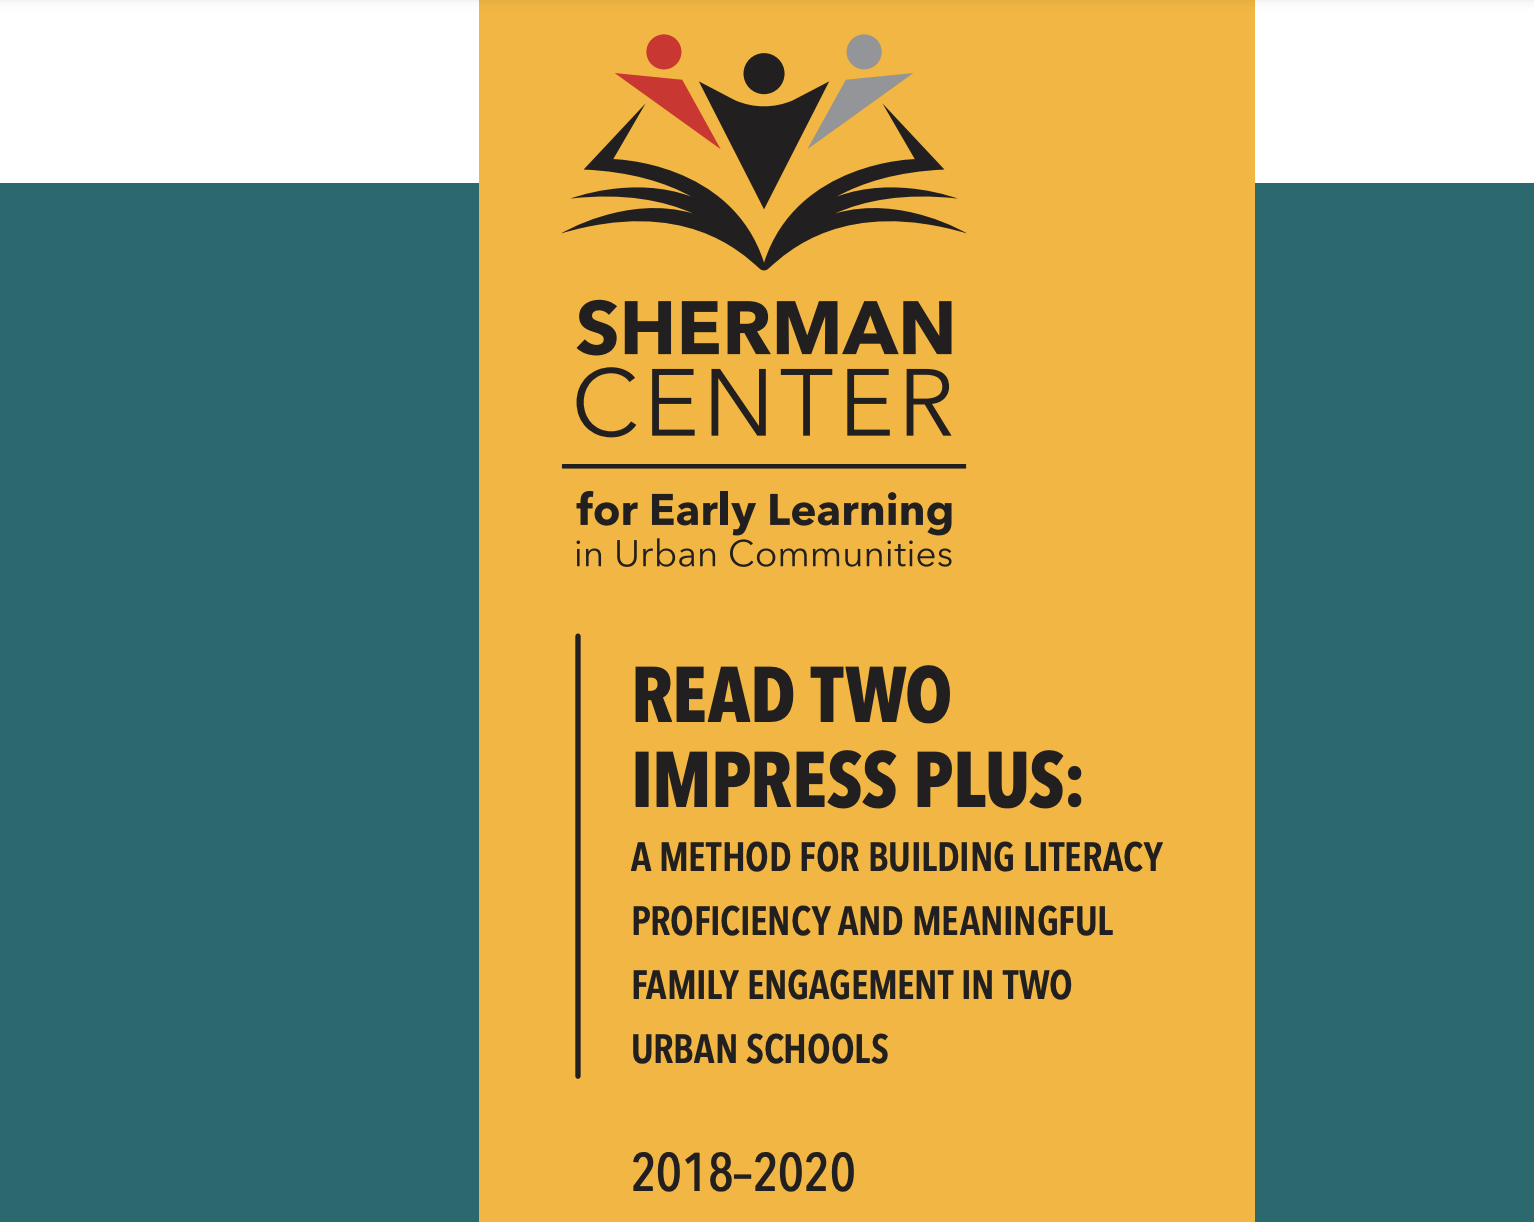 Sherman Center releases new report on Read Two Impress Plus